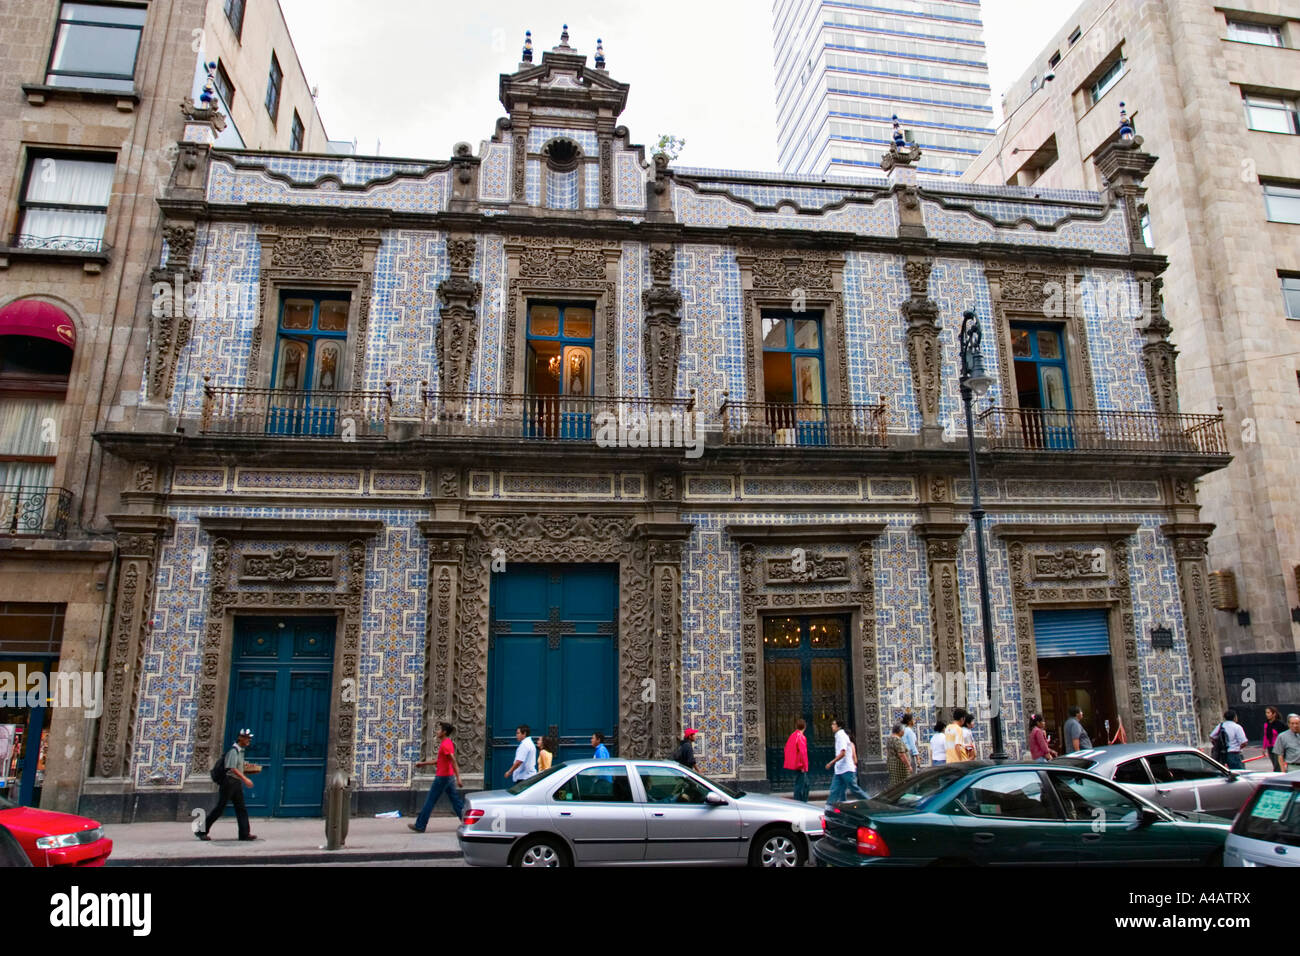 Casa de los azulejos mexico city mexico stock photo for Azulejos mexico